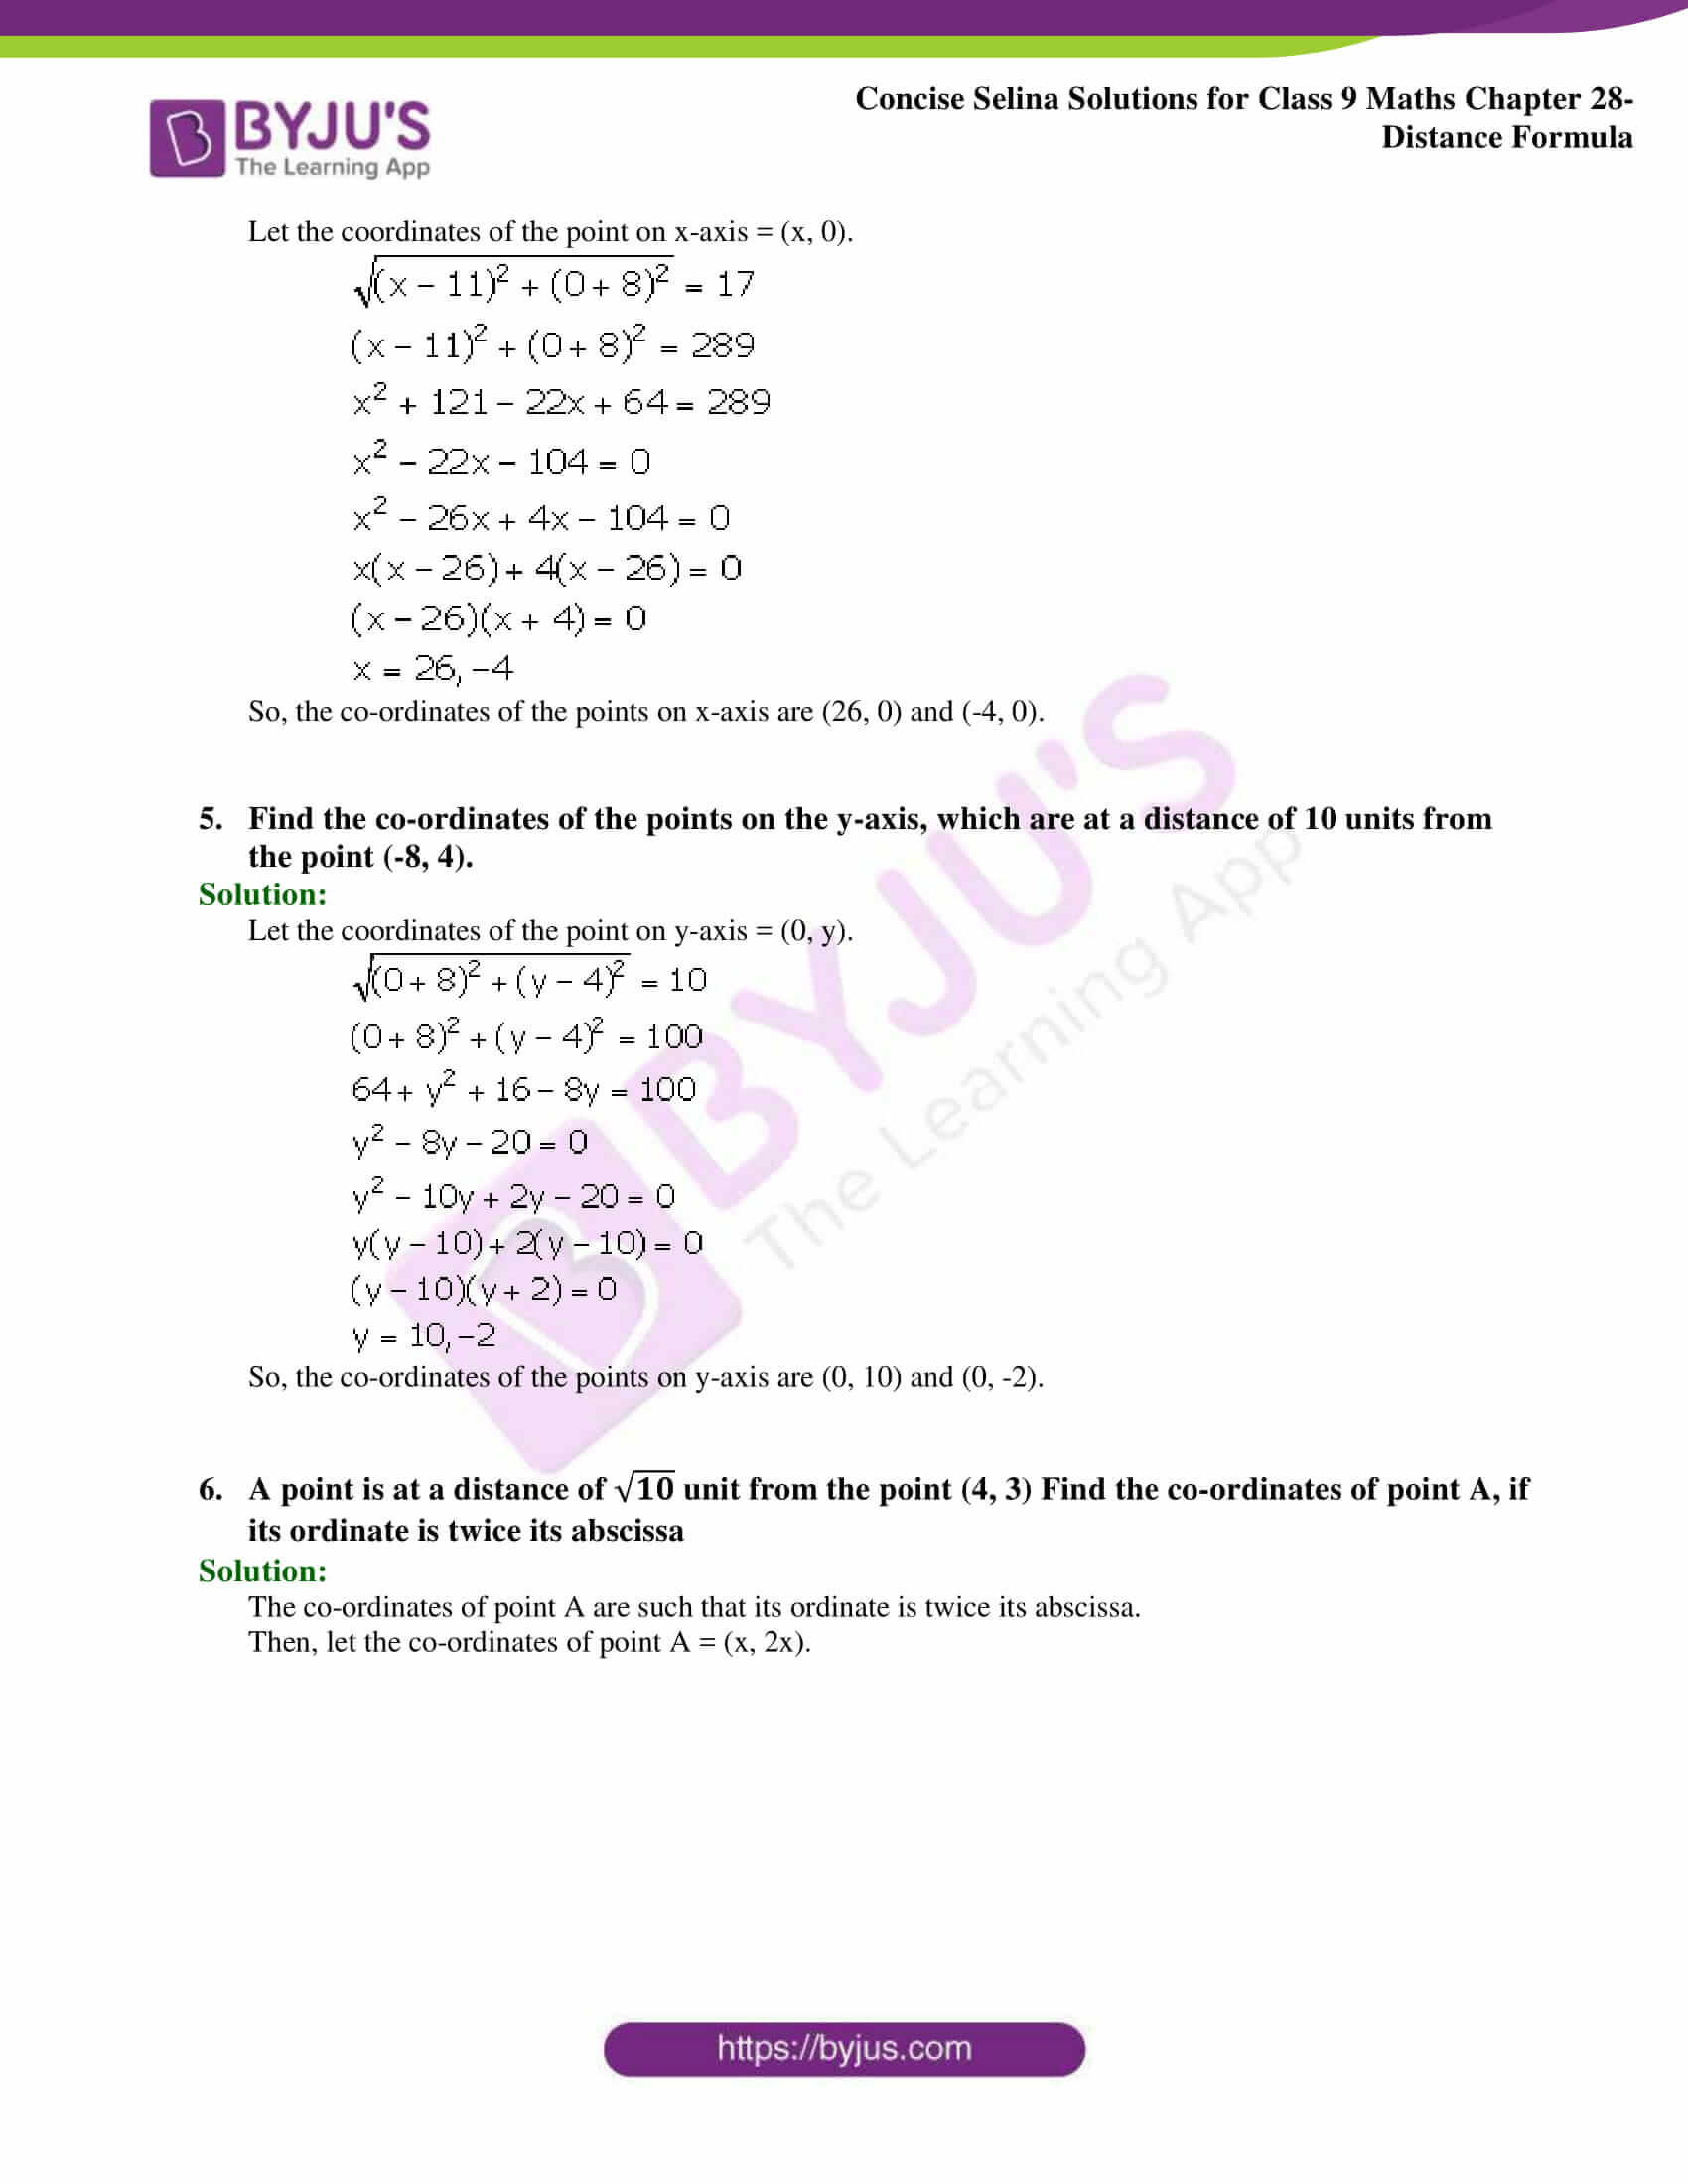 Concise Selina Solutions Class 9 Maths Chapter 28 Distance Formula part 03